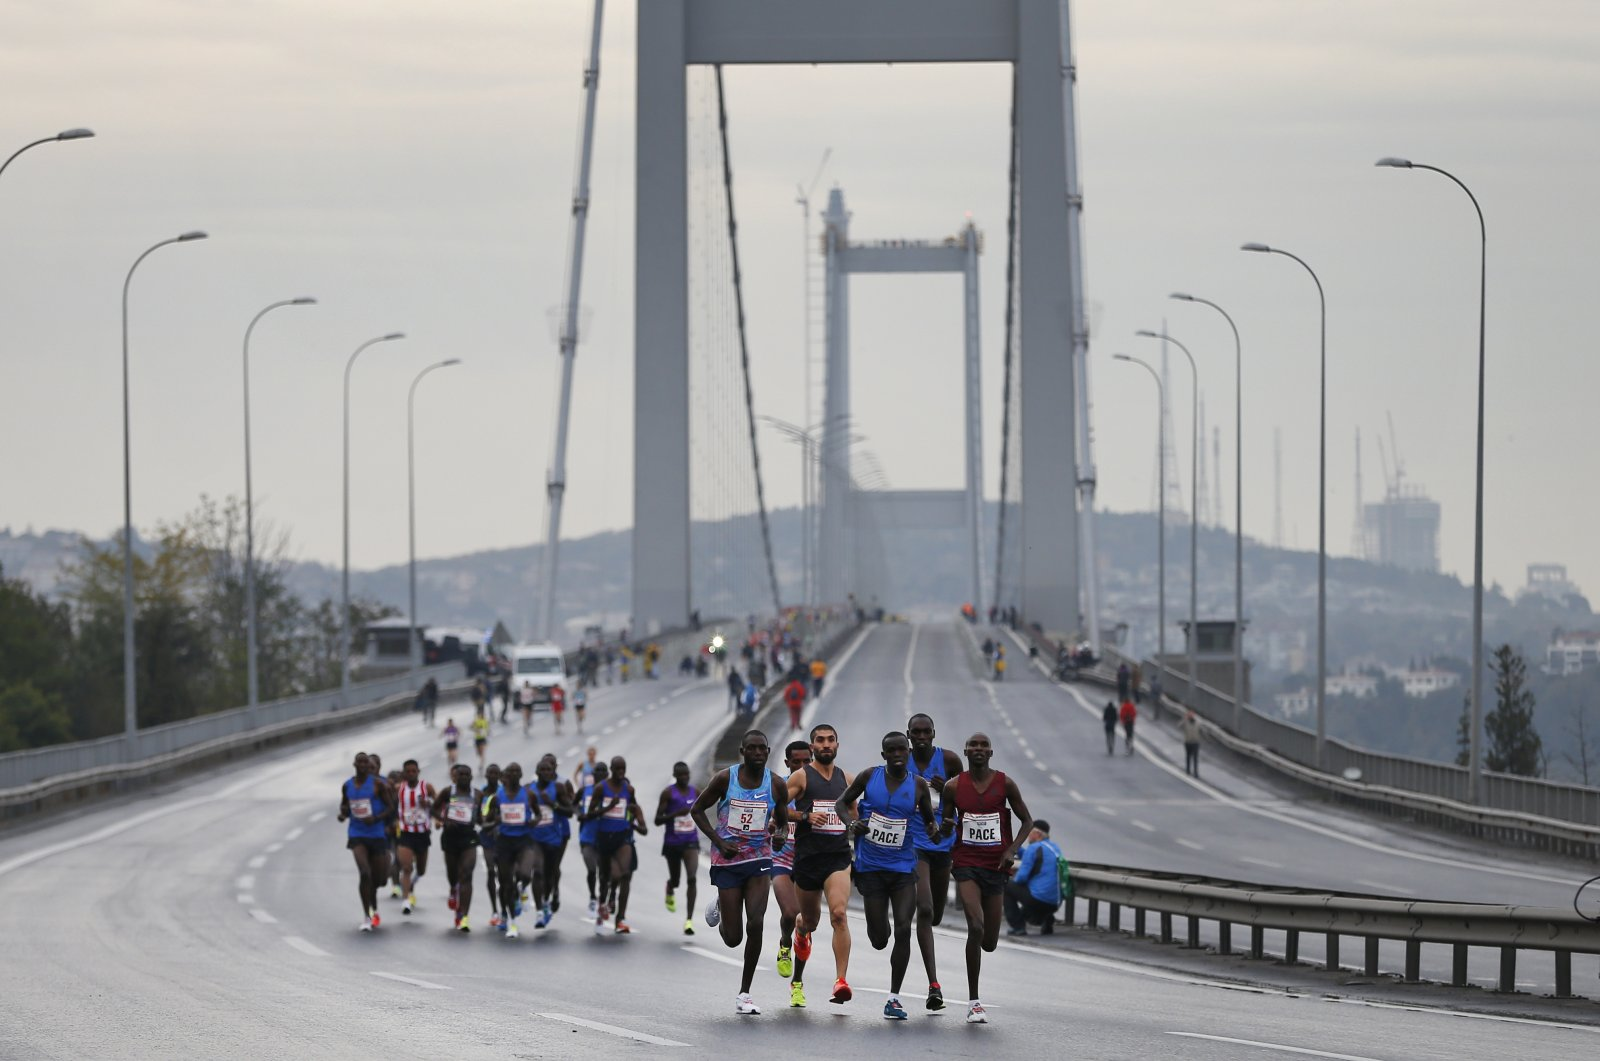 Athletes cross the July 15th Martyrs' Bridge during the Istanbul Marathon, in Istanbul, Turkey, Nov. 12, 2017. (AP Photo)